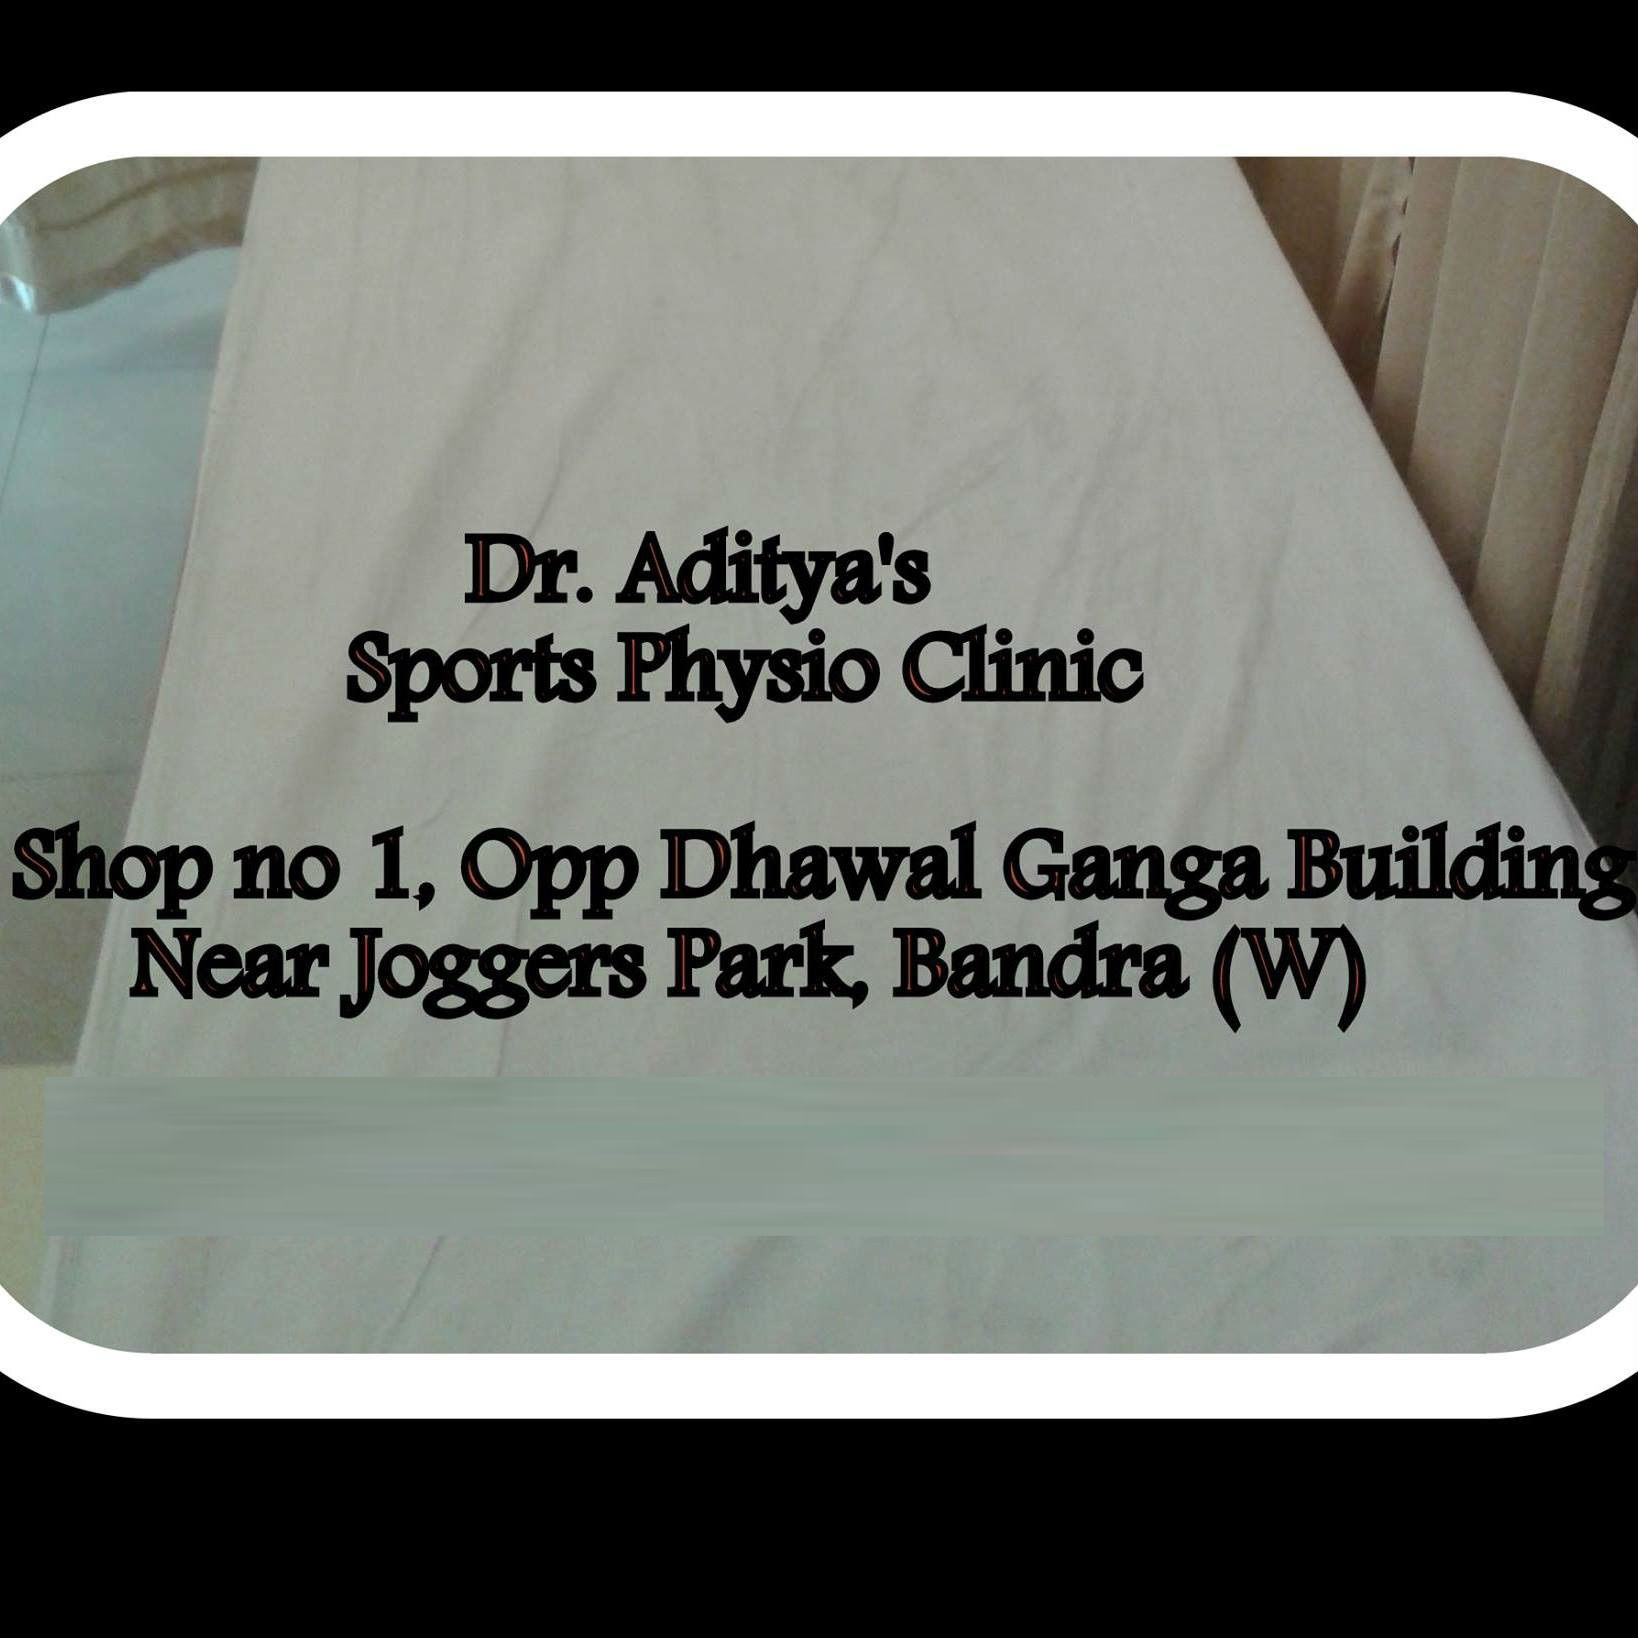 Dr. Aditya Pardasany's Physiotherapy Centre